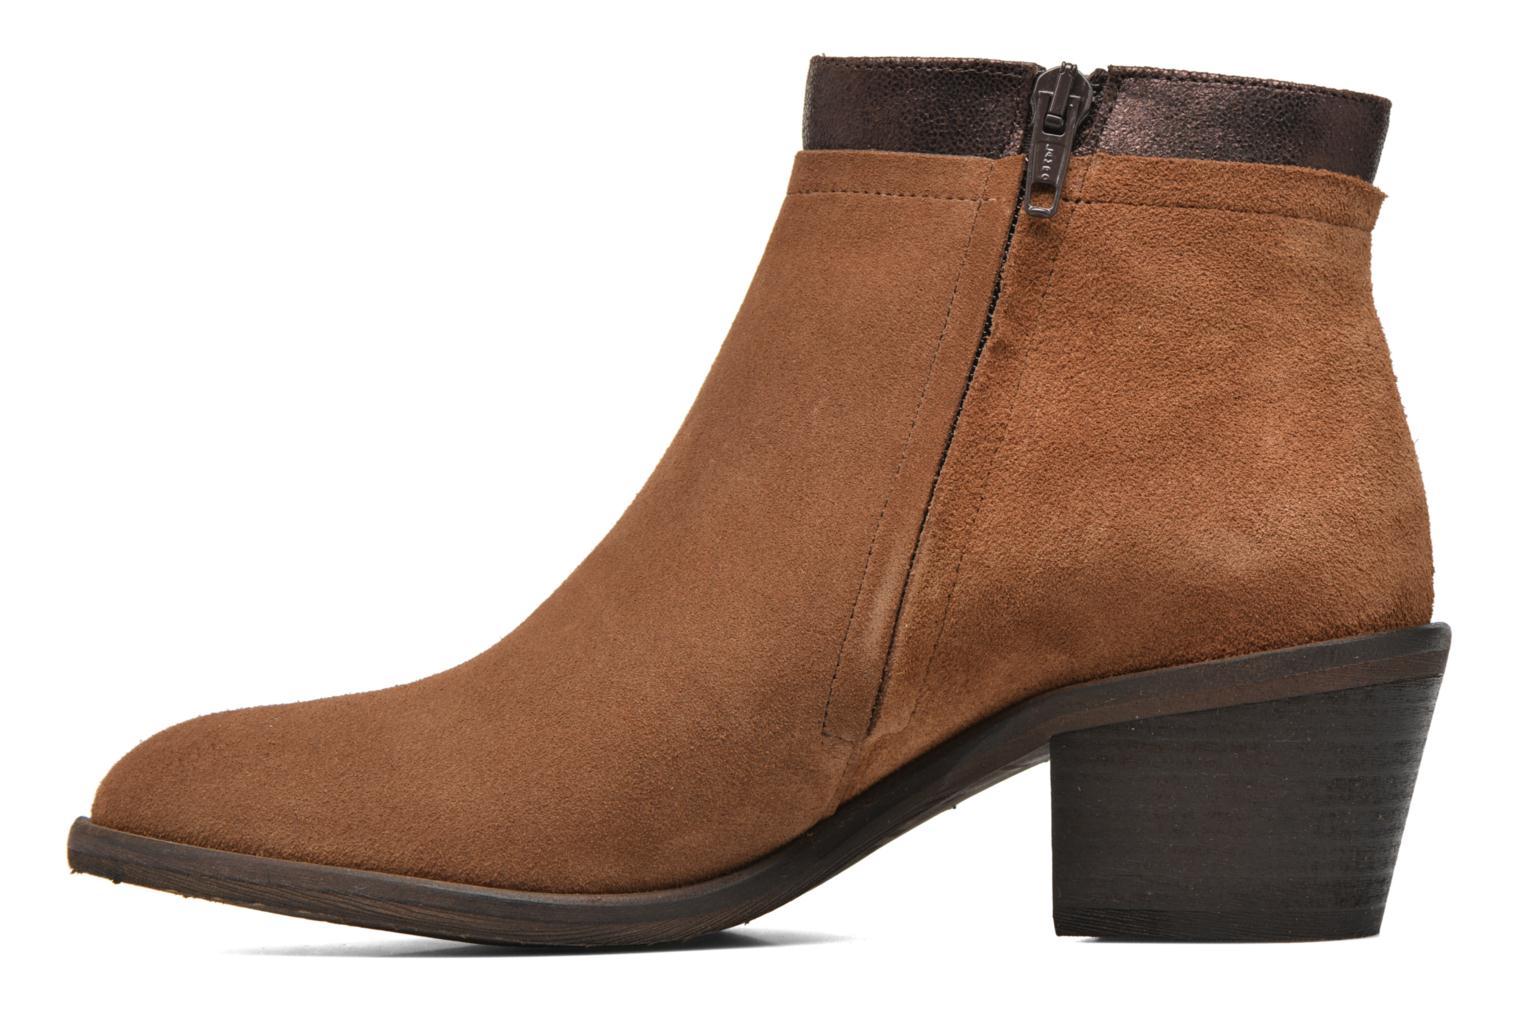 Bottines et boots Schmoove Woman Neptune zip boots Marron vue face